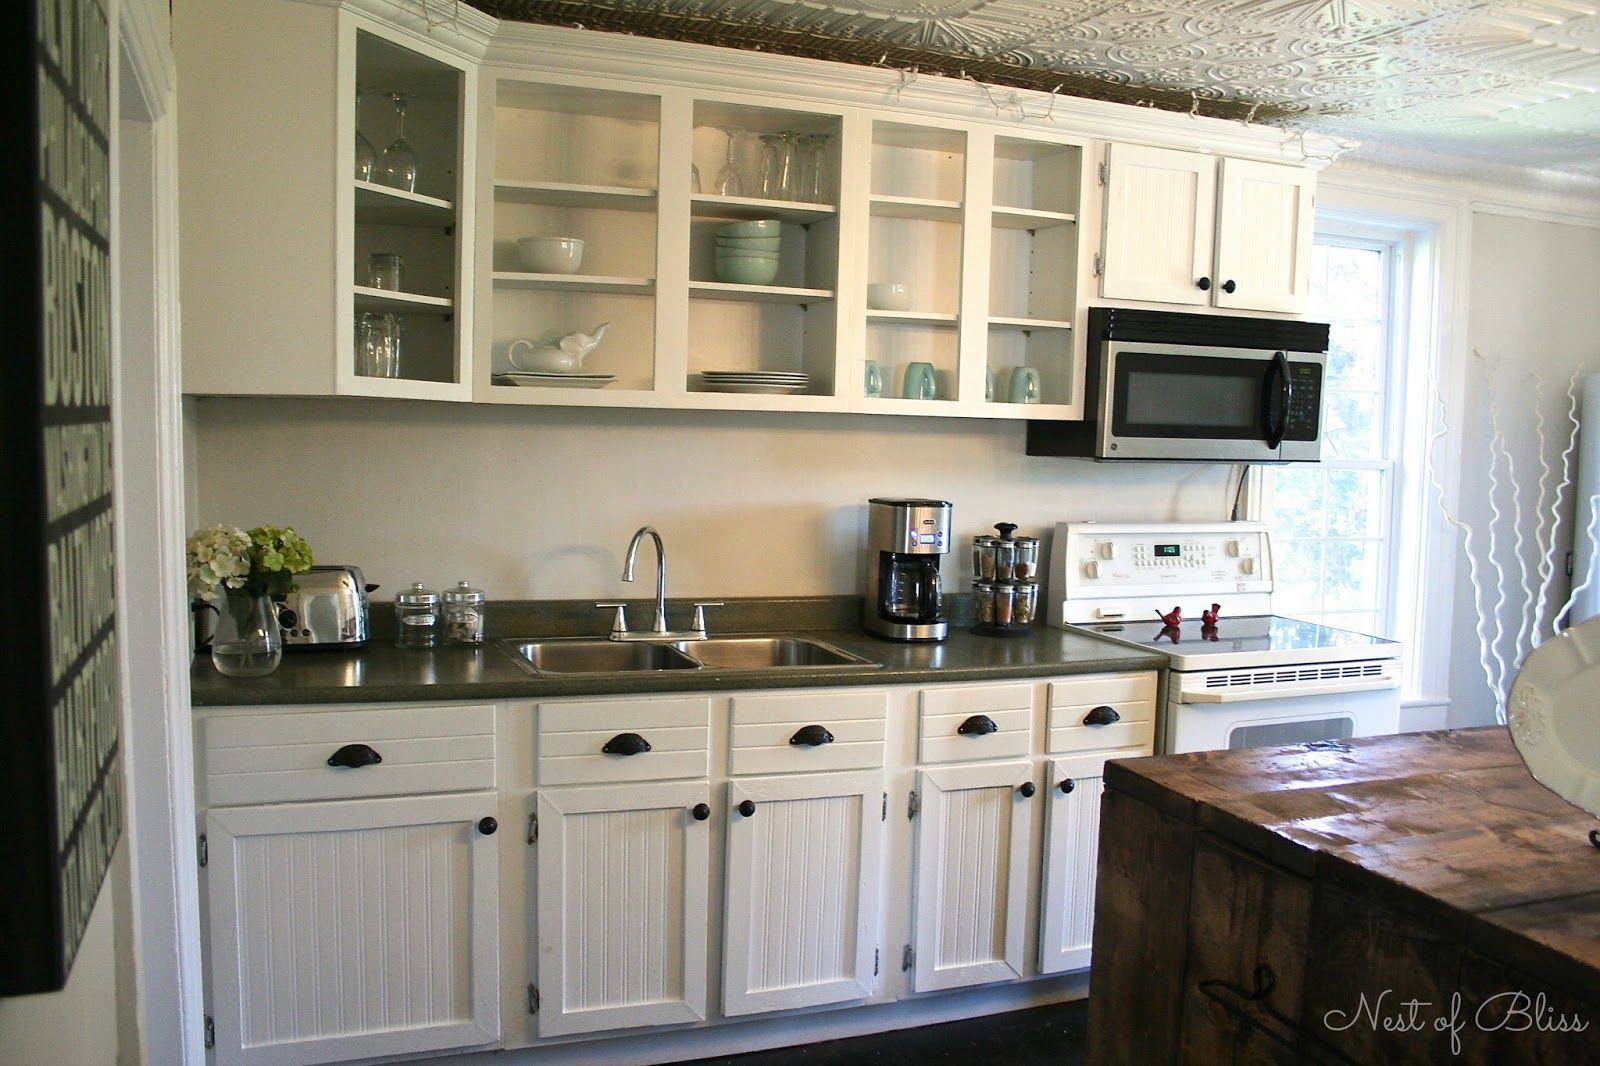 Redoing kitchen cabinets on a budget - Cheap Kitchen Makeovers Kitchen Makeovers Cheap Wallpaper Kitchen Renovation Makeover Progress